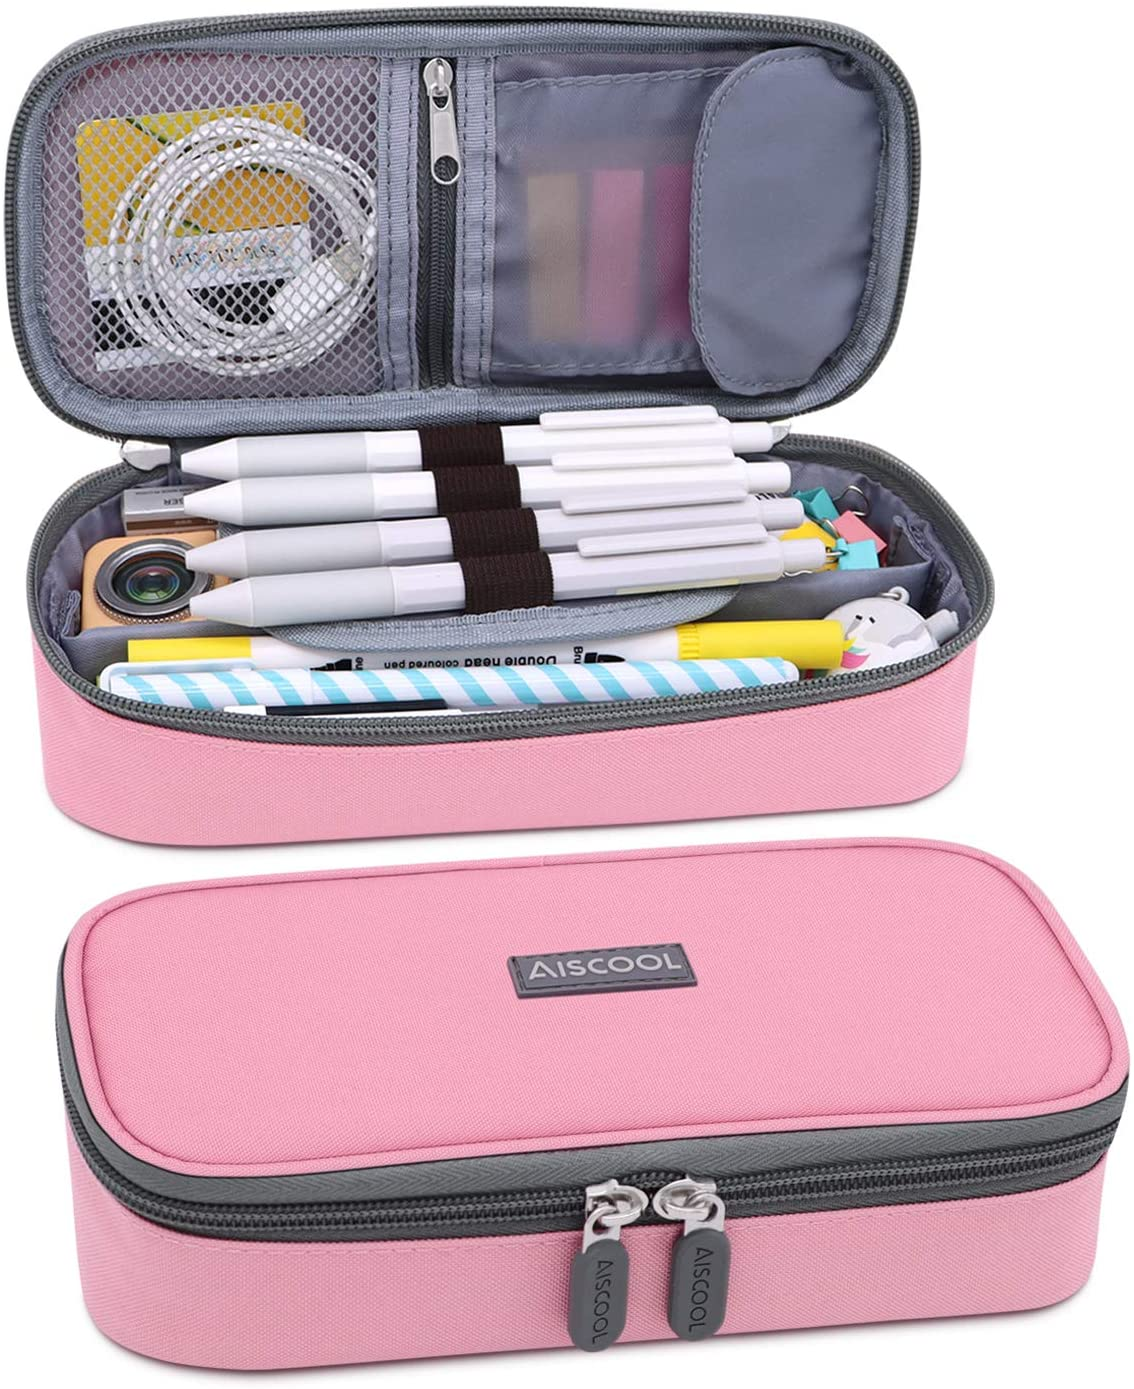 Aiscool Big Capacity Pencil Case Holder Canvas Bag Pen Organizer Pouch Stationery Box for School Supplies Office Stuff (Pink)